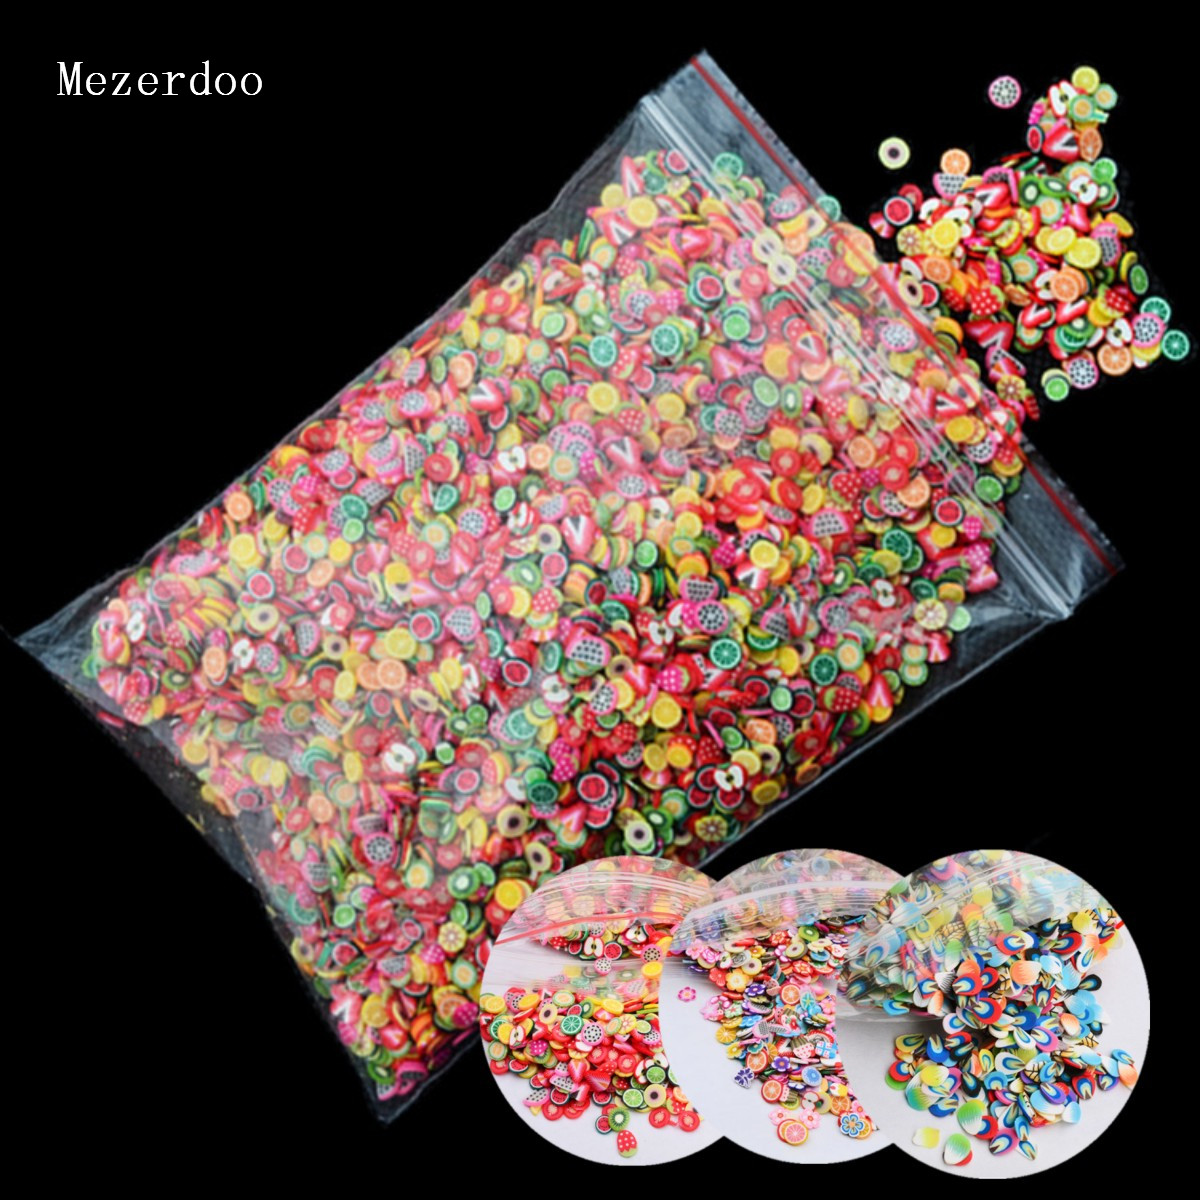 10000pcs/pack 3D Nail Art Fruit Fimo Slices Polymer Clay DIY Slice Decoration Smile Feather Nail Sticker Nail Jewelry Wholesale free shipping nail art decorations fruit slices 3d polymer clay tiny fimo wheel nail art rhinestones acrylic decoration manicure